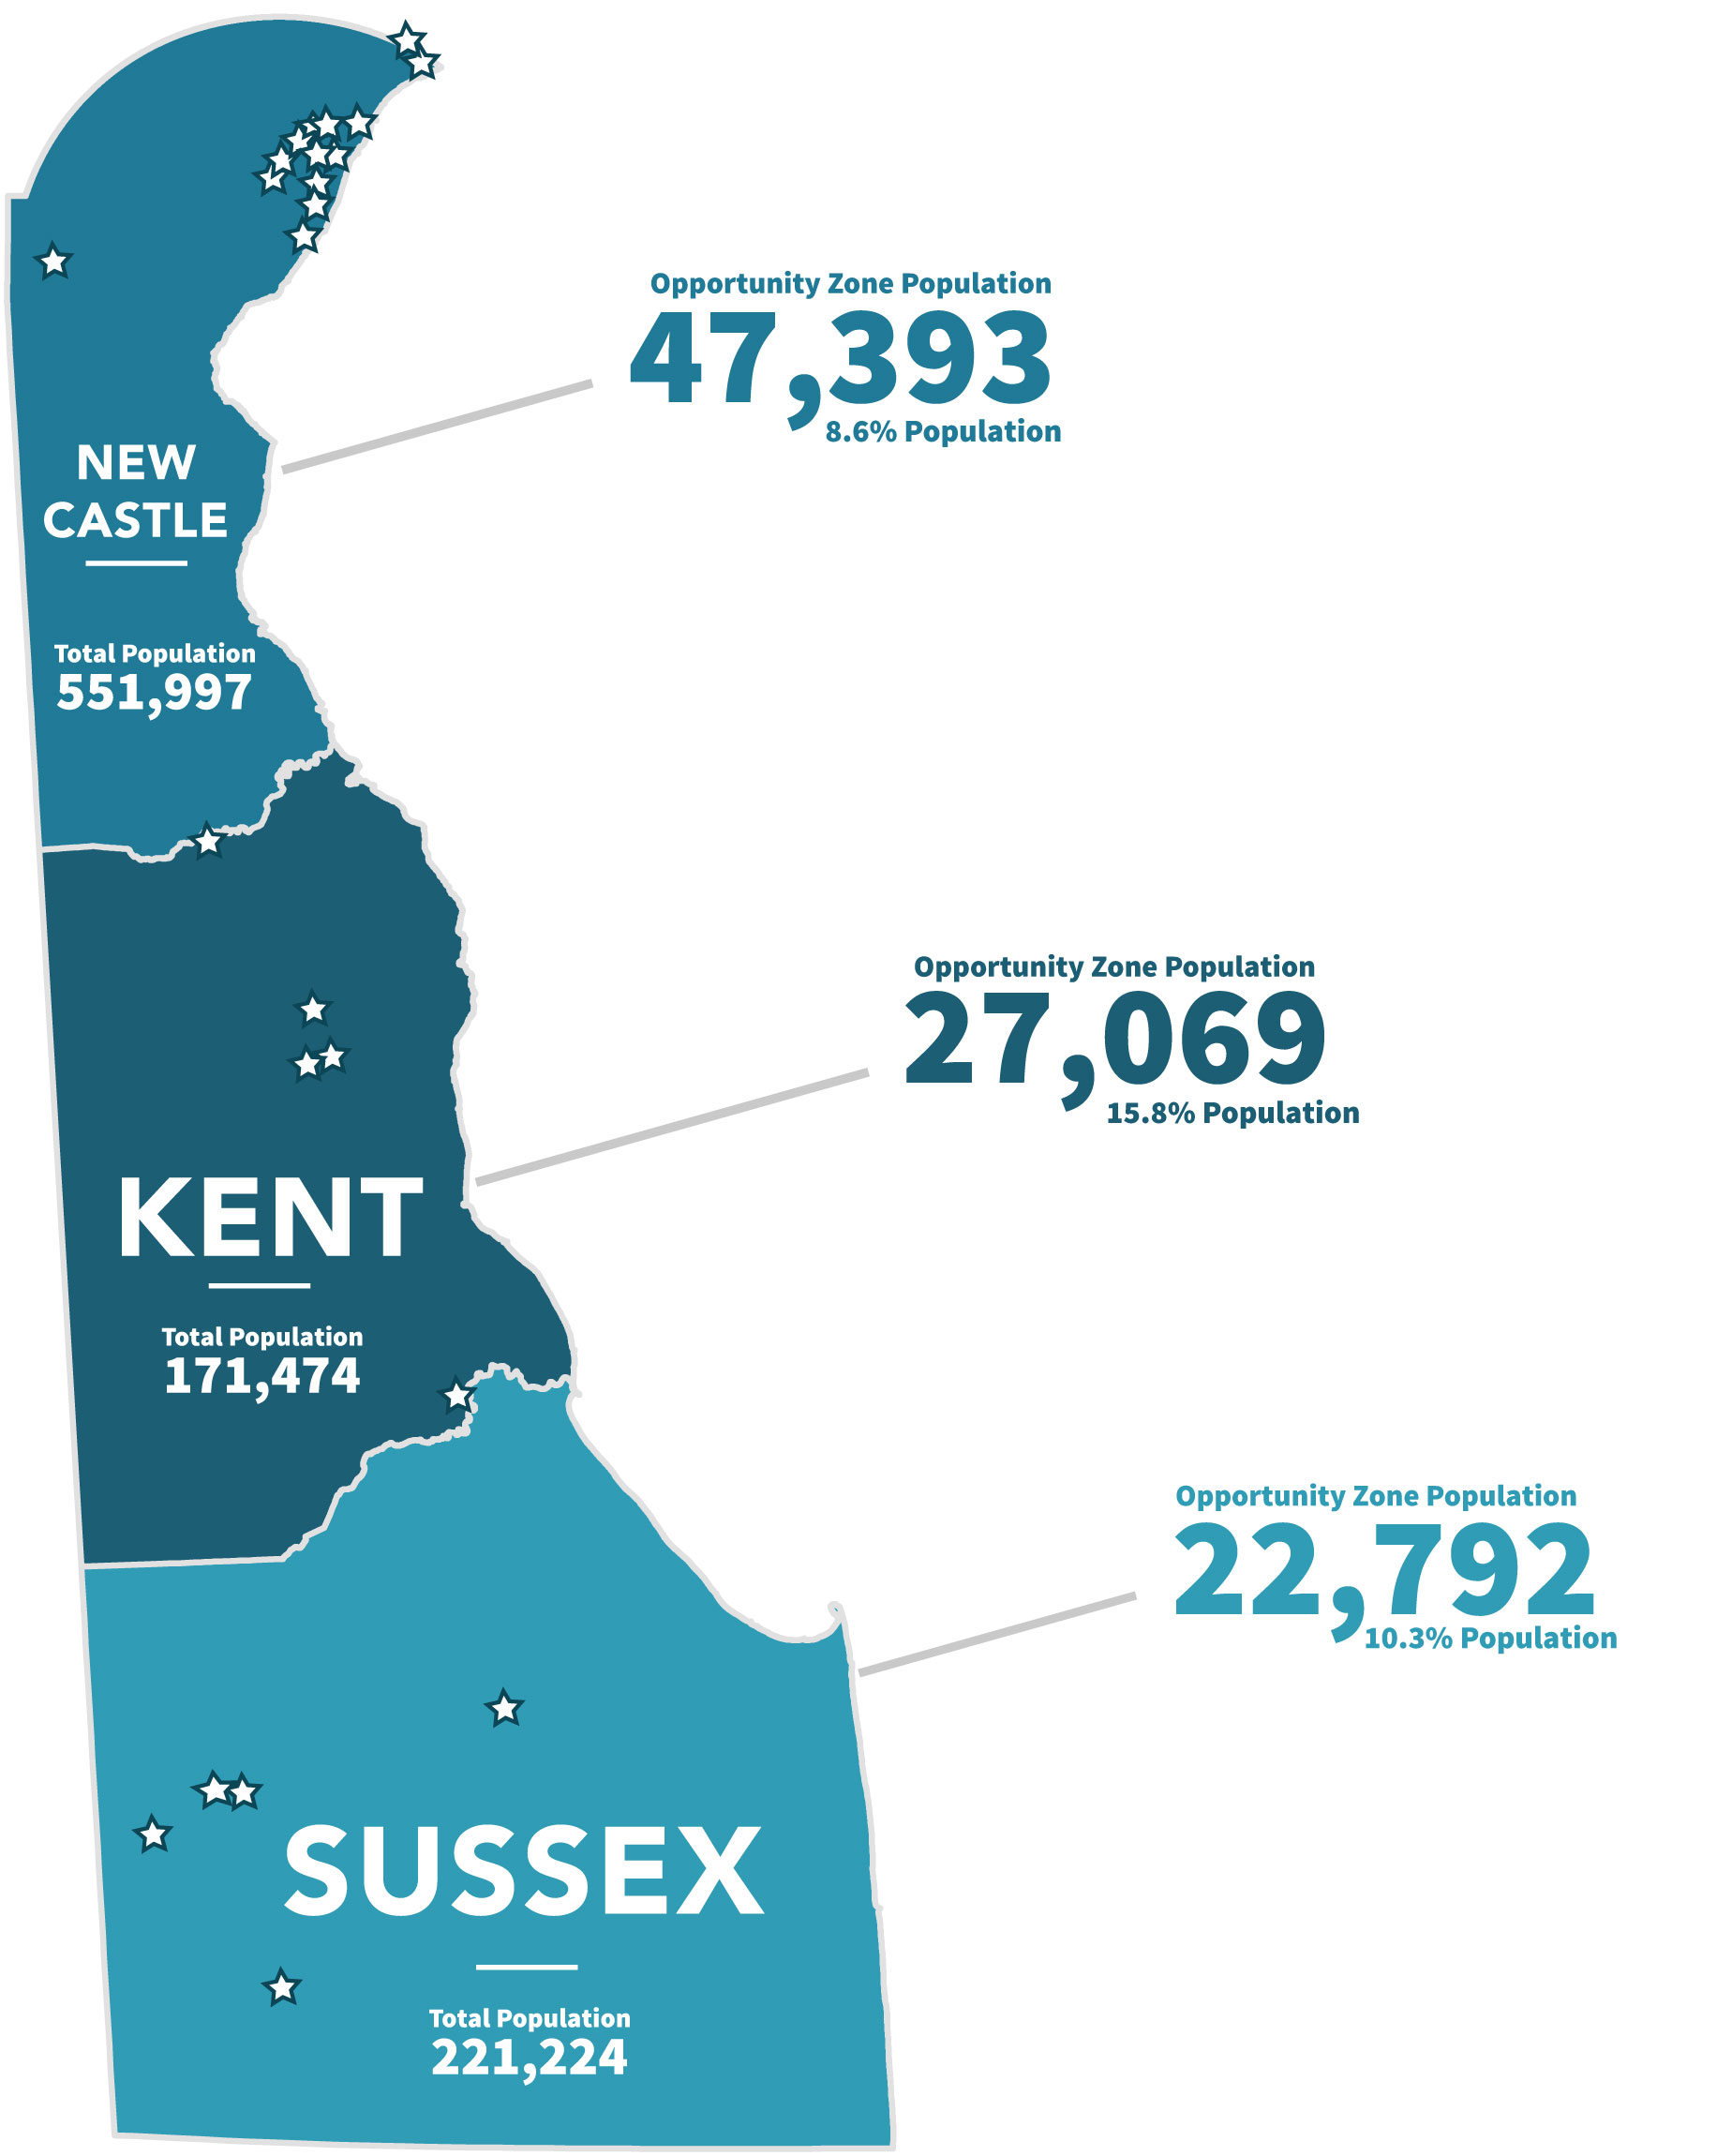 Total Population in Opportunity Zones by County - New Castle: 47393, Kent: 27,069, Sussex: 22,792